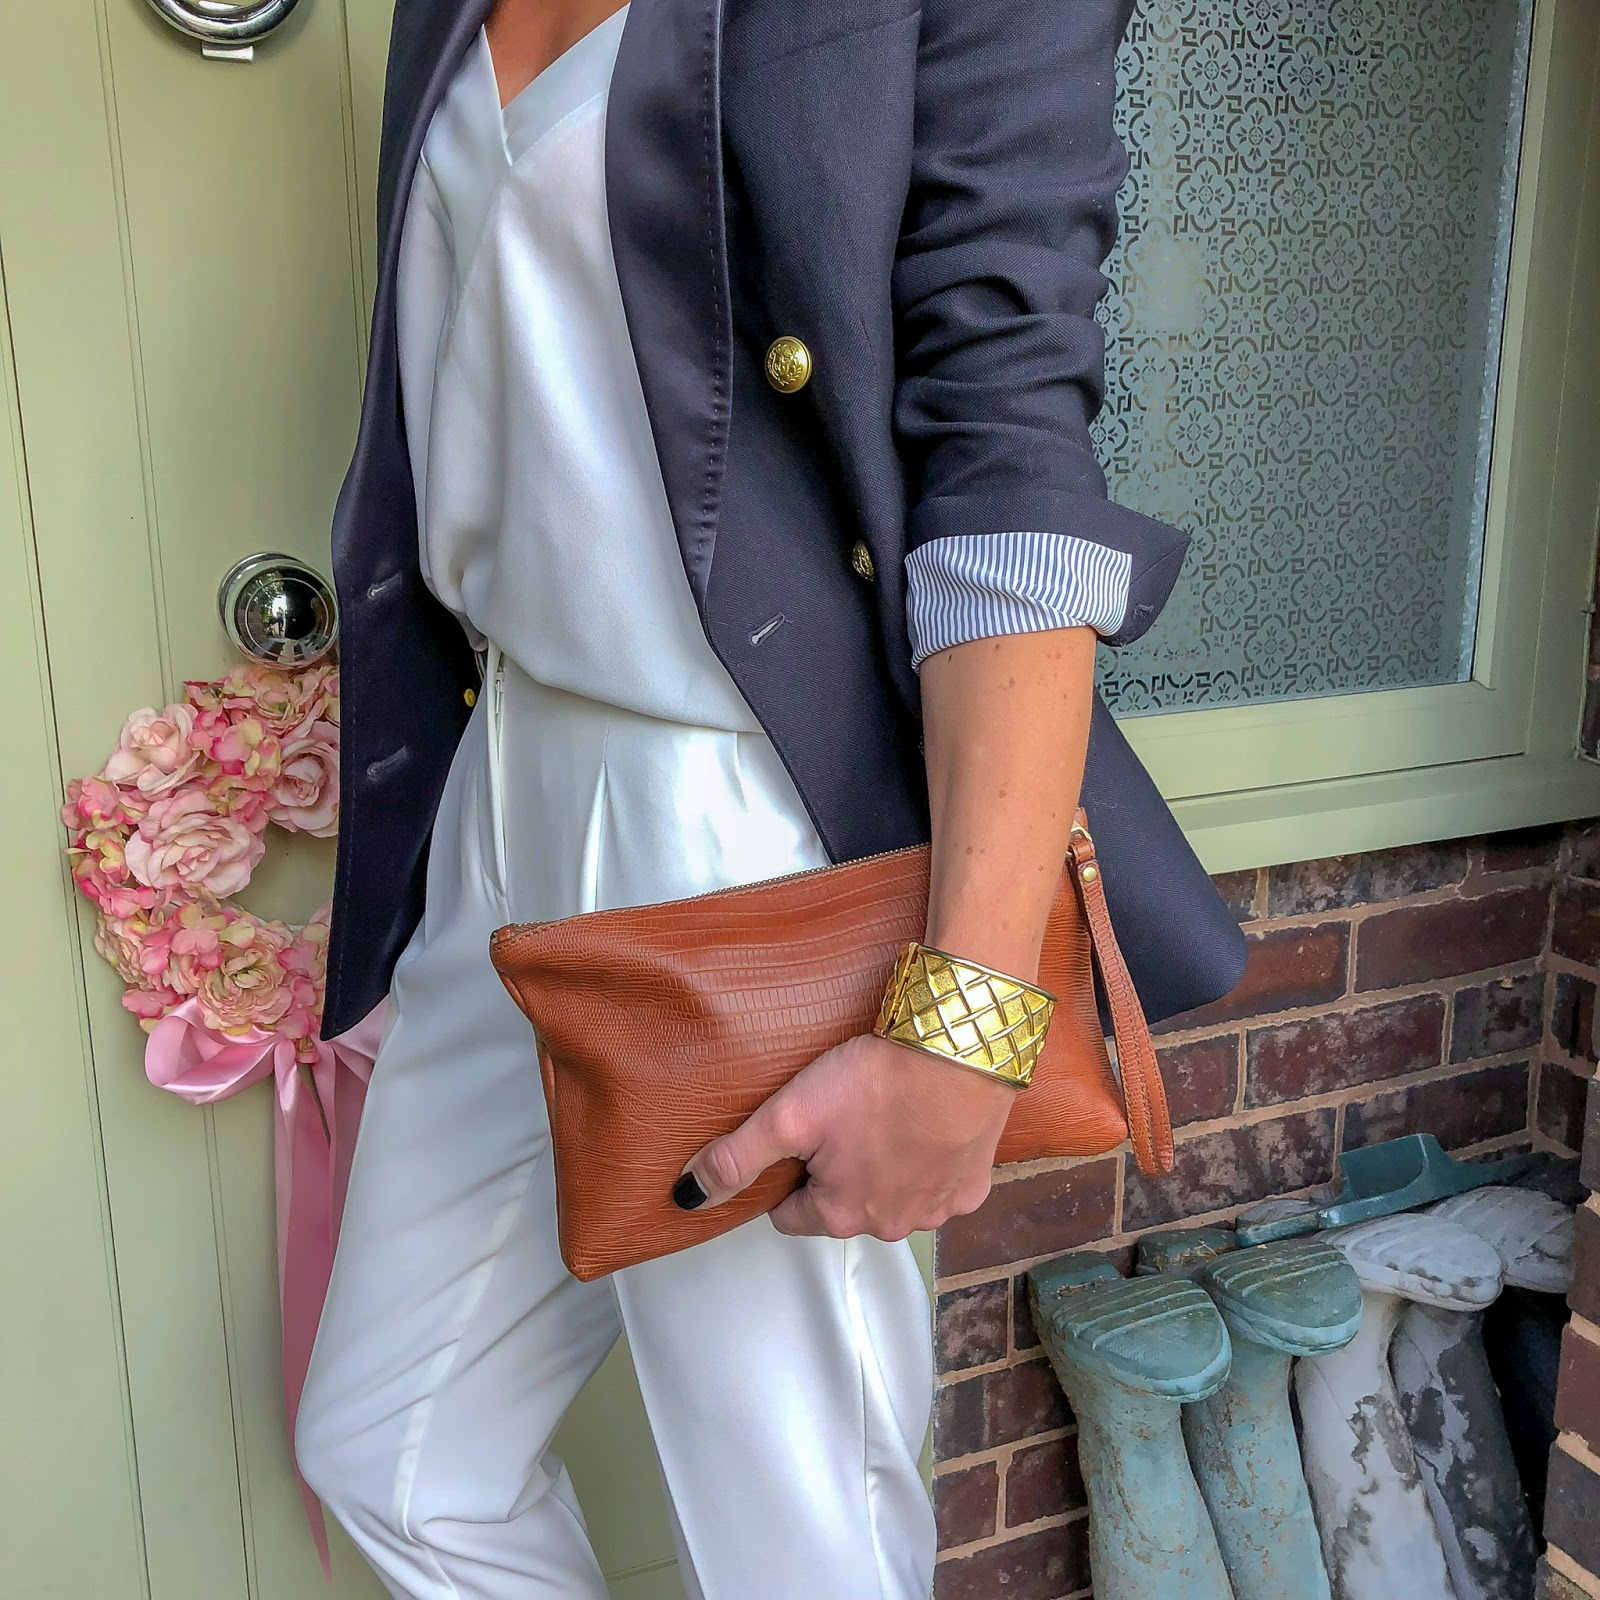 my midlife fashion, marks and spencer tapered leg trousers, mango camisole, j crew tuxedo double breasted jacket, massimo dutti tan leather clutch, next block heel tan sandals